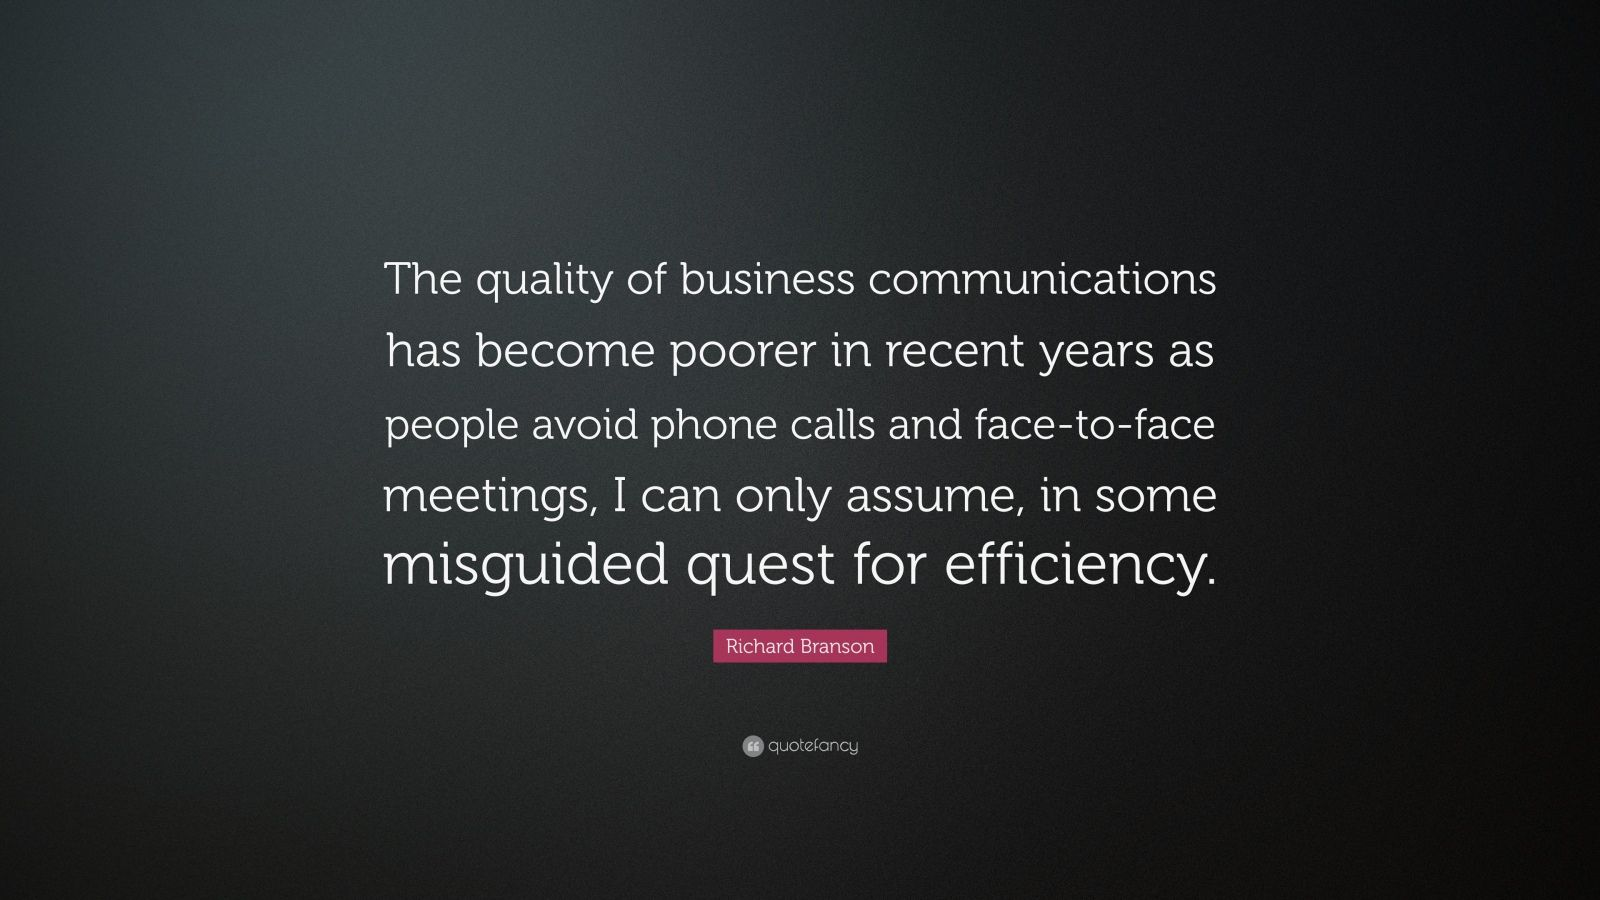 """Richard Branson Quote: """"The quality of business communications has become poorer in recent years as people avoid phone calls and face-to-face meetings, I can only assume, in some misguided quest for efficiency."""""""